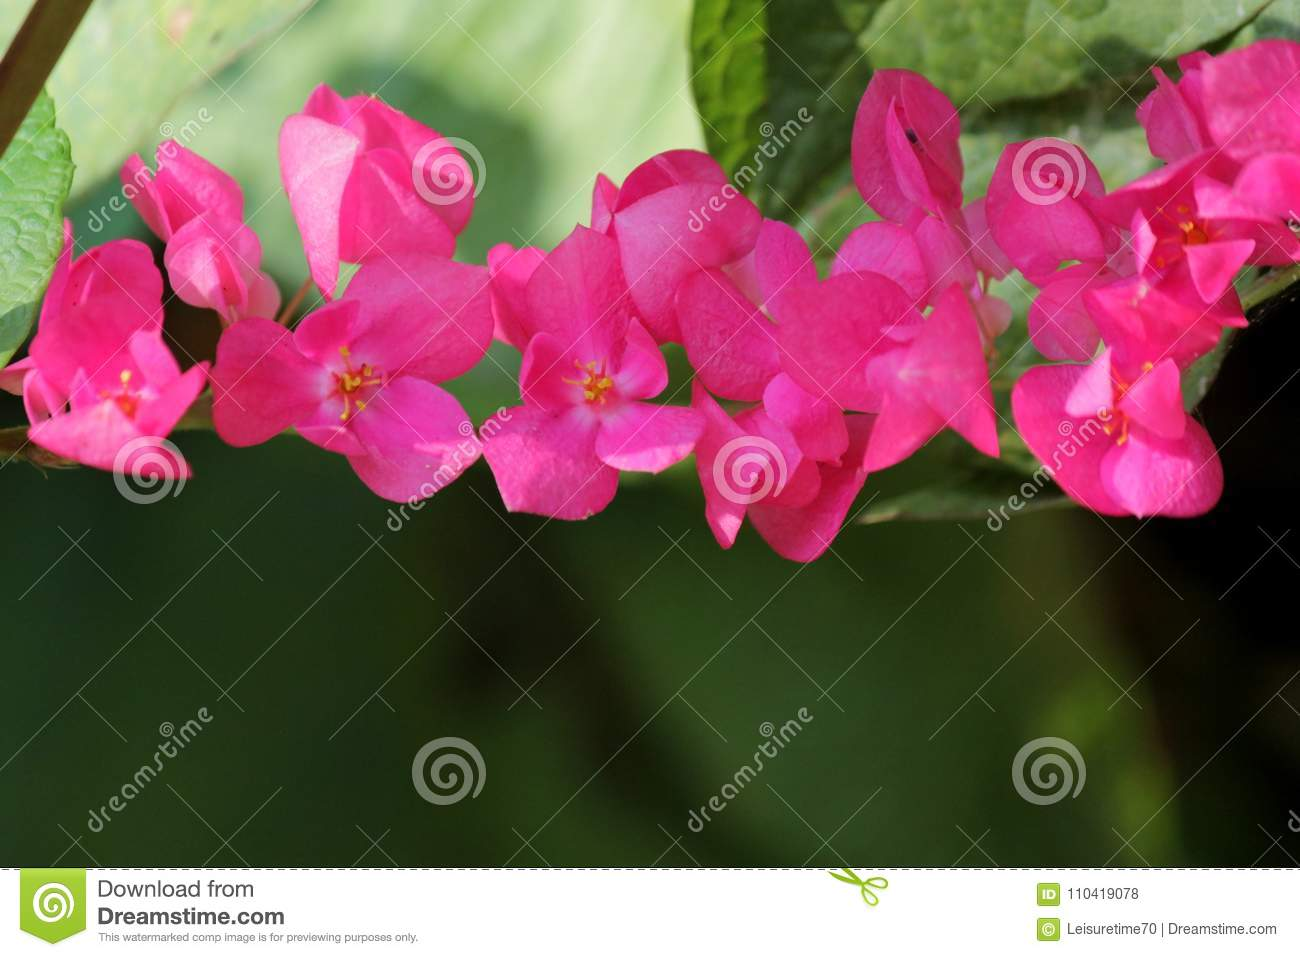 Belle Fleur Mexicaine Rose De Plante Grimpante Photo Stock Image